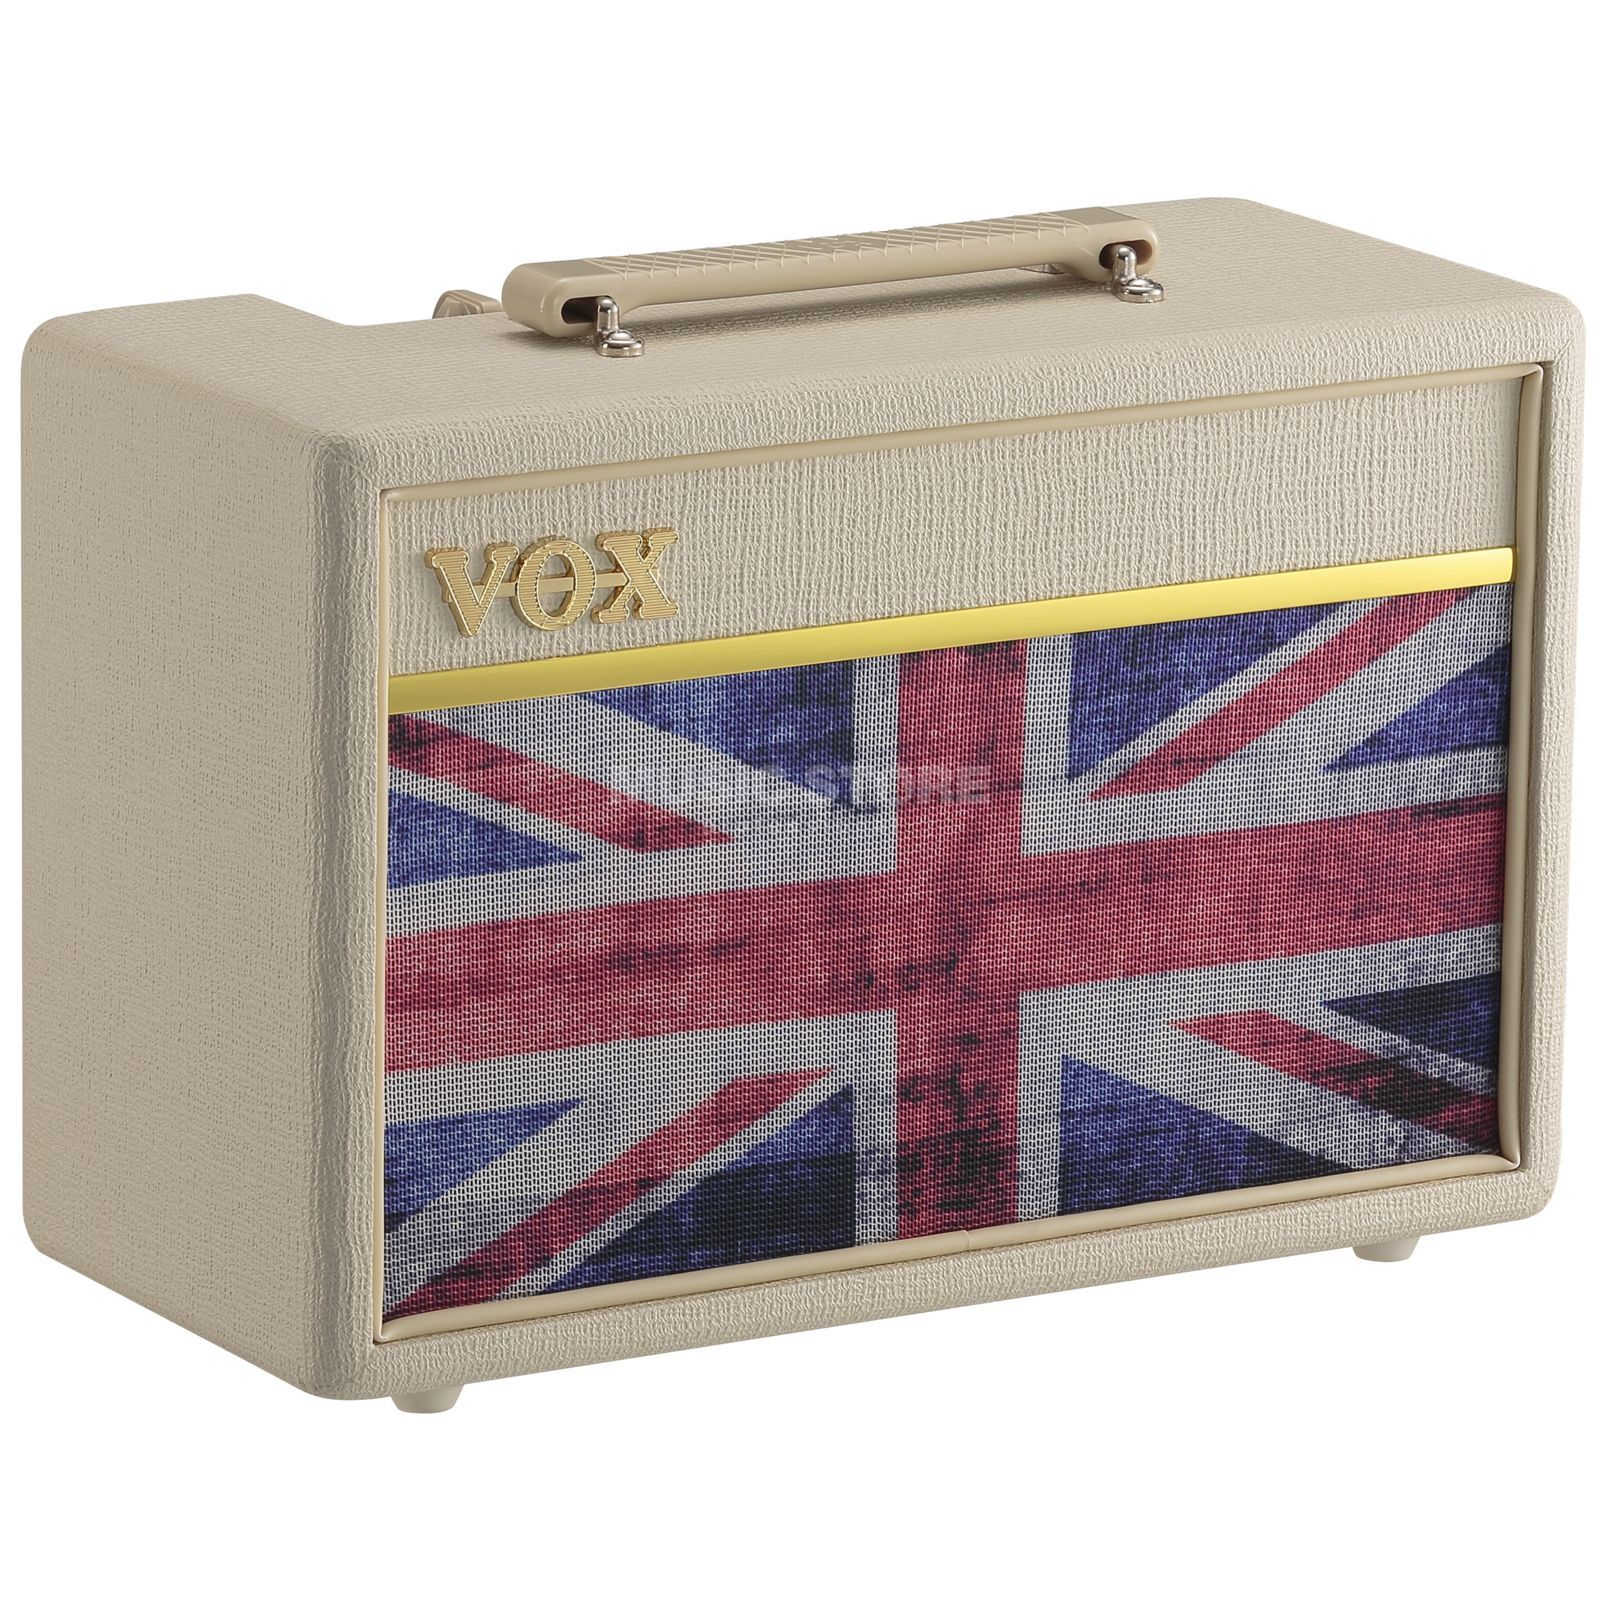 VOX Pathfinder 10 Combo Union Jack Limited Edition Produktbild